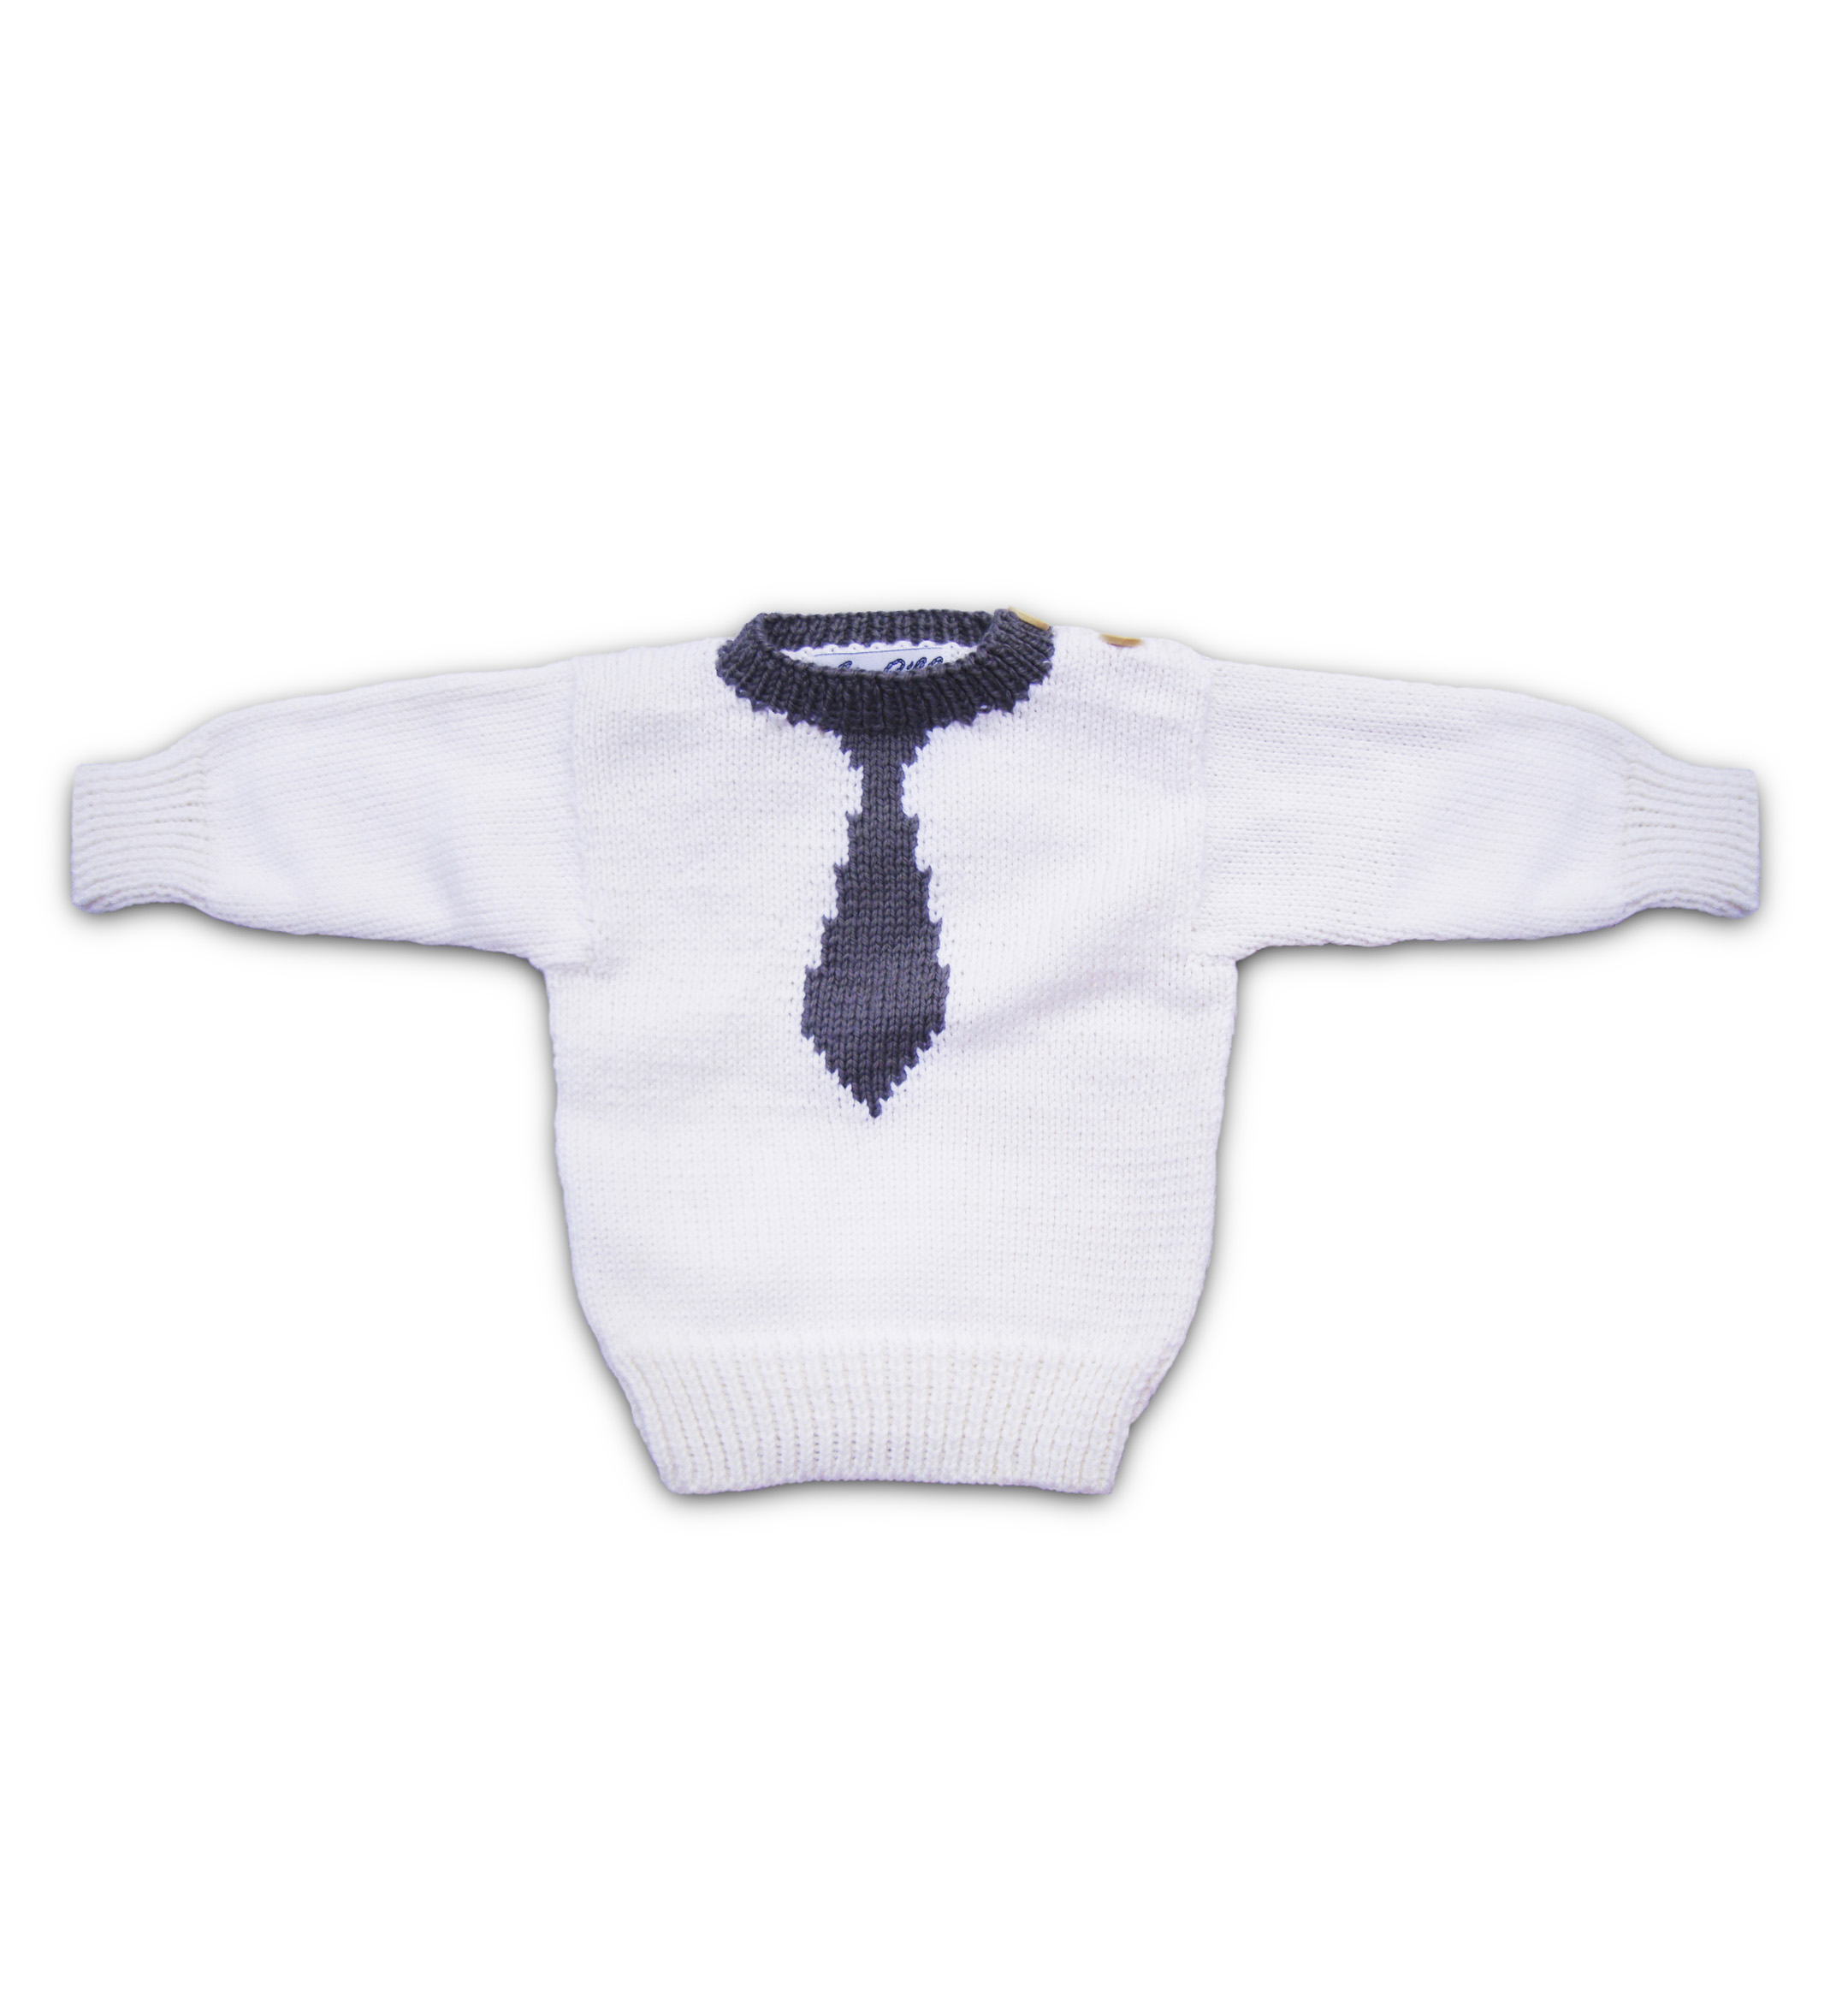 Tie Stylish Merino Wool Jumper